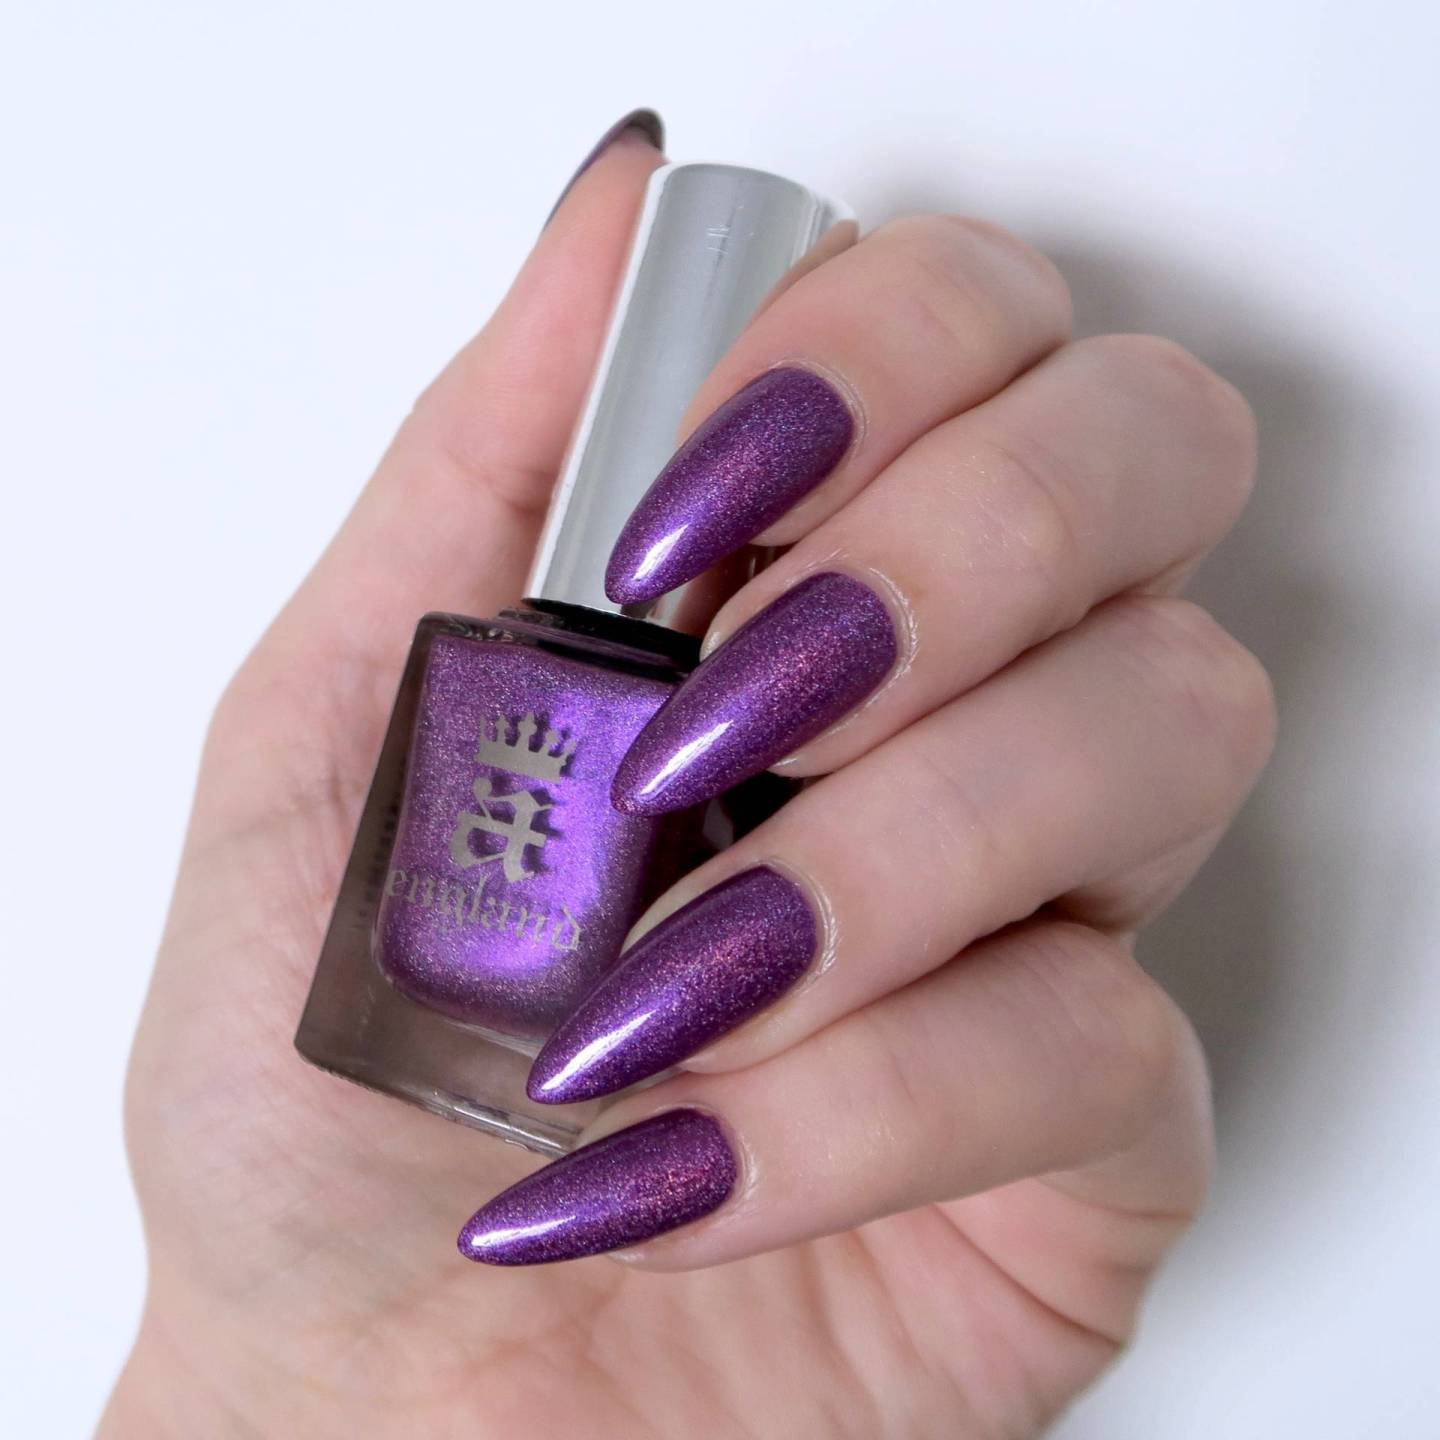 a-england 'Crown Of Thistles'. This purple holo polish feels so wintery, I love it!